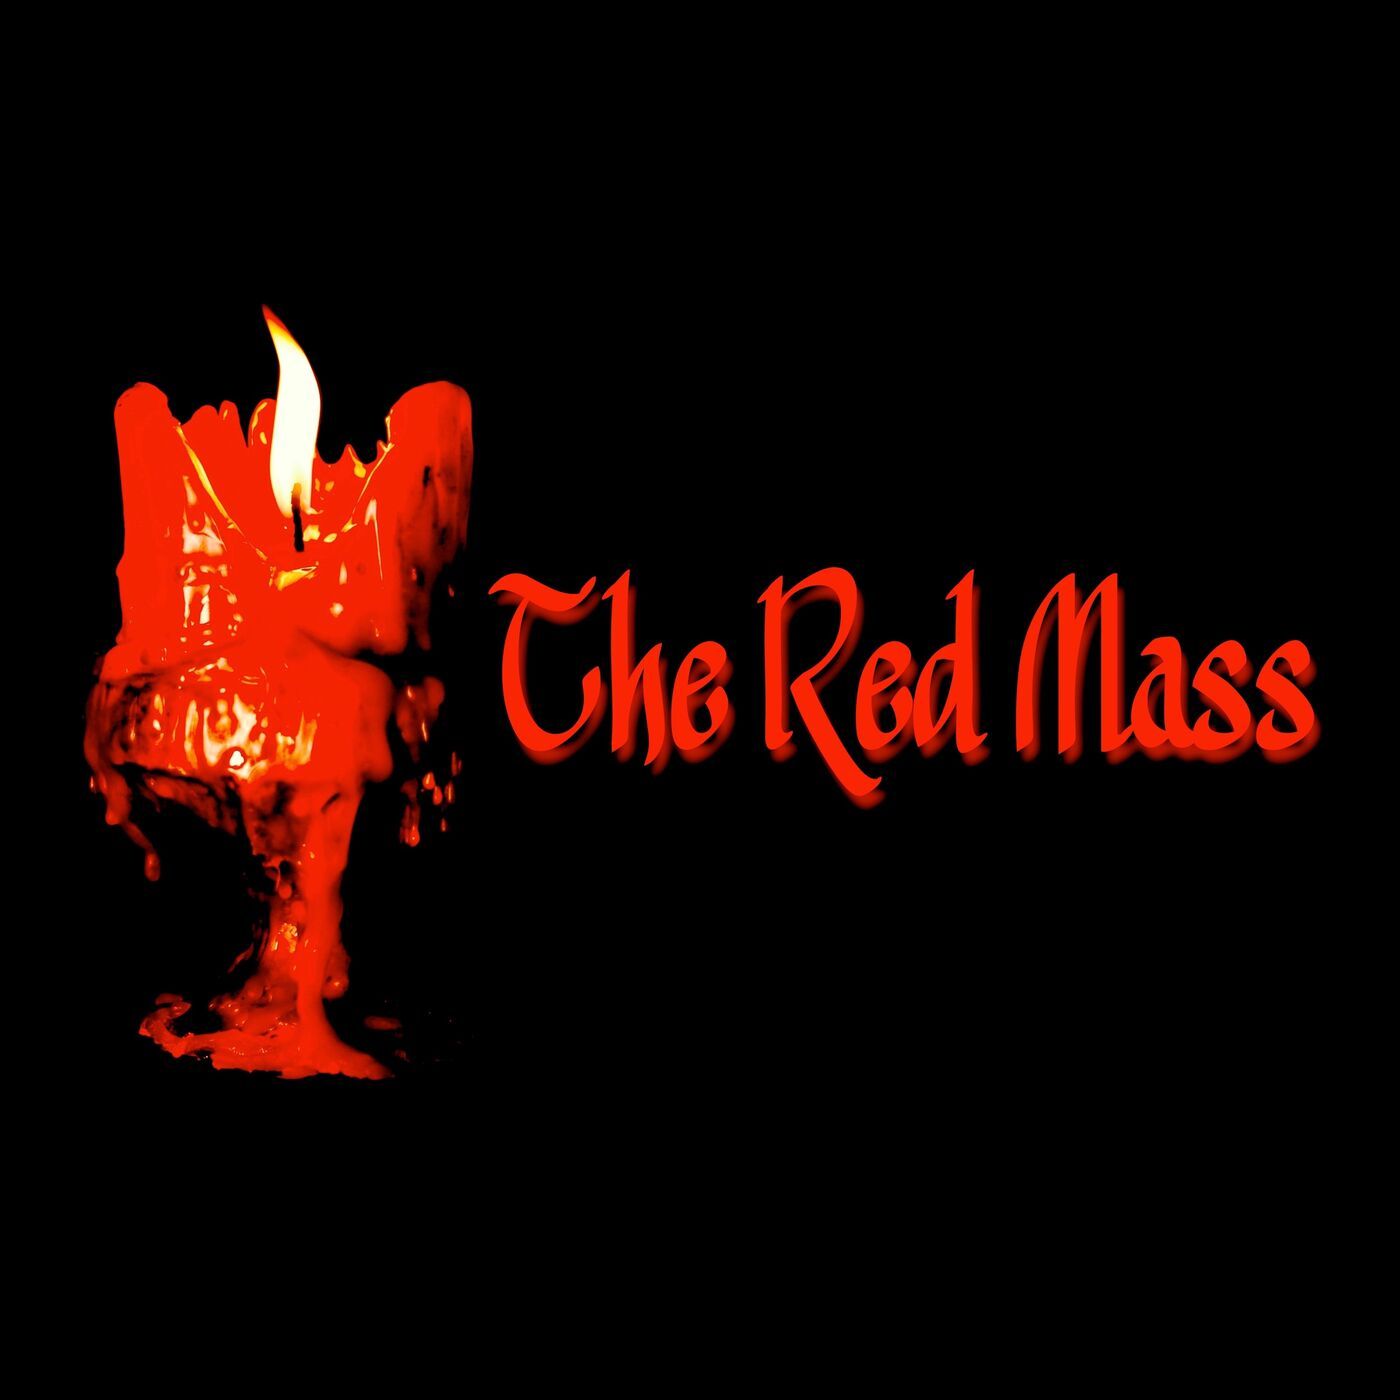 Chapter 4 The Red Mass